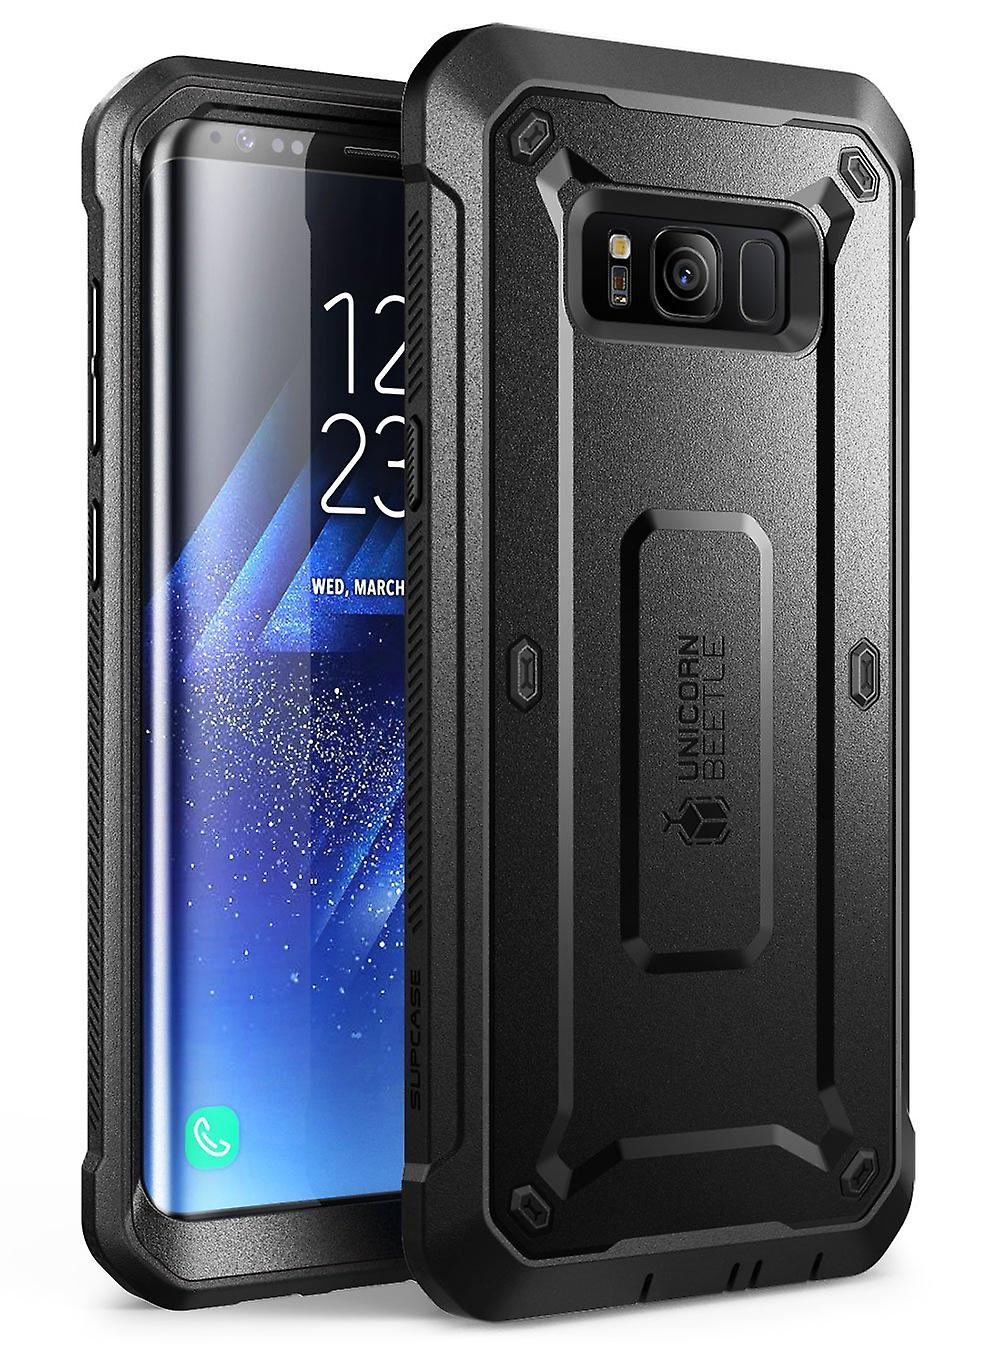 Samsung Galaxy S8 Case, SUPCASE,Unicorn Beetle Pro,  Full-body Rugged Holster Case for Samsung Galaxy S8 case